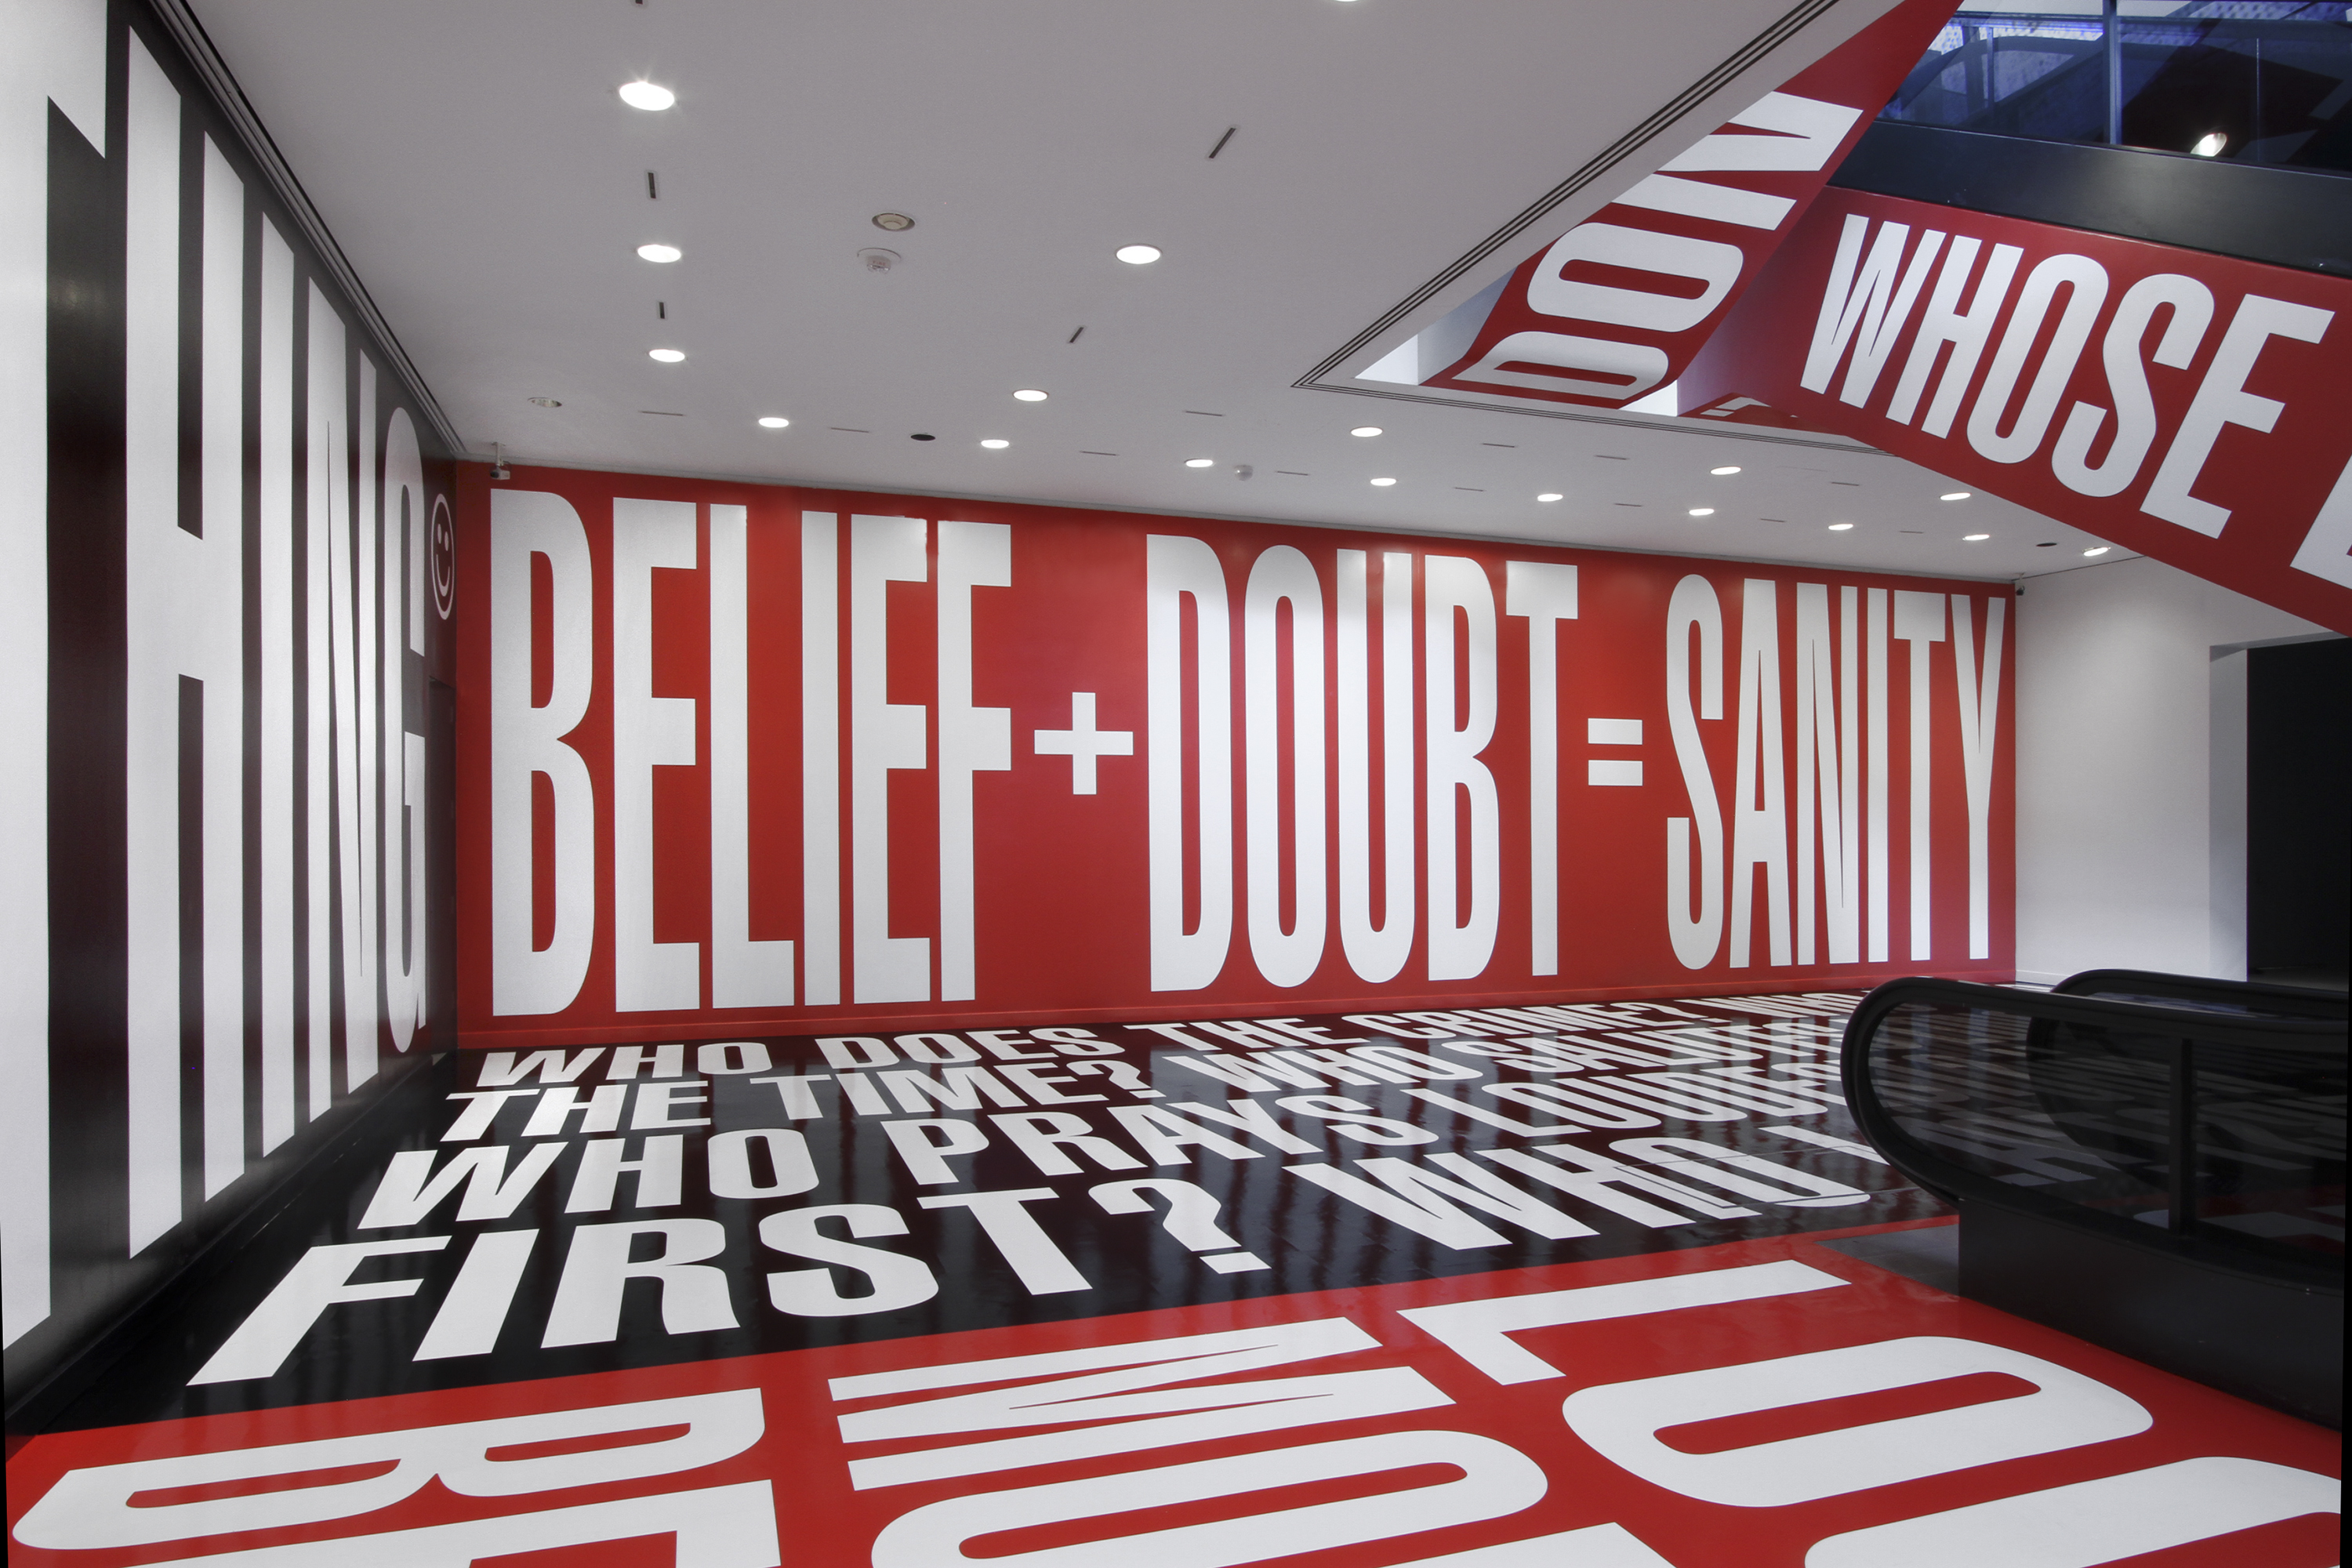 Barbara Kruger: Belief+Doubt